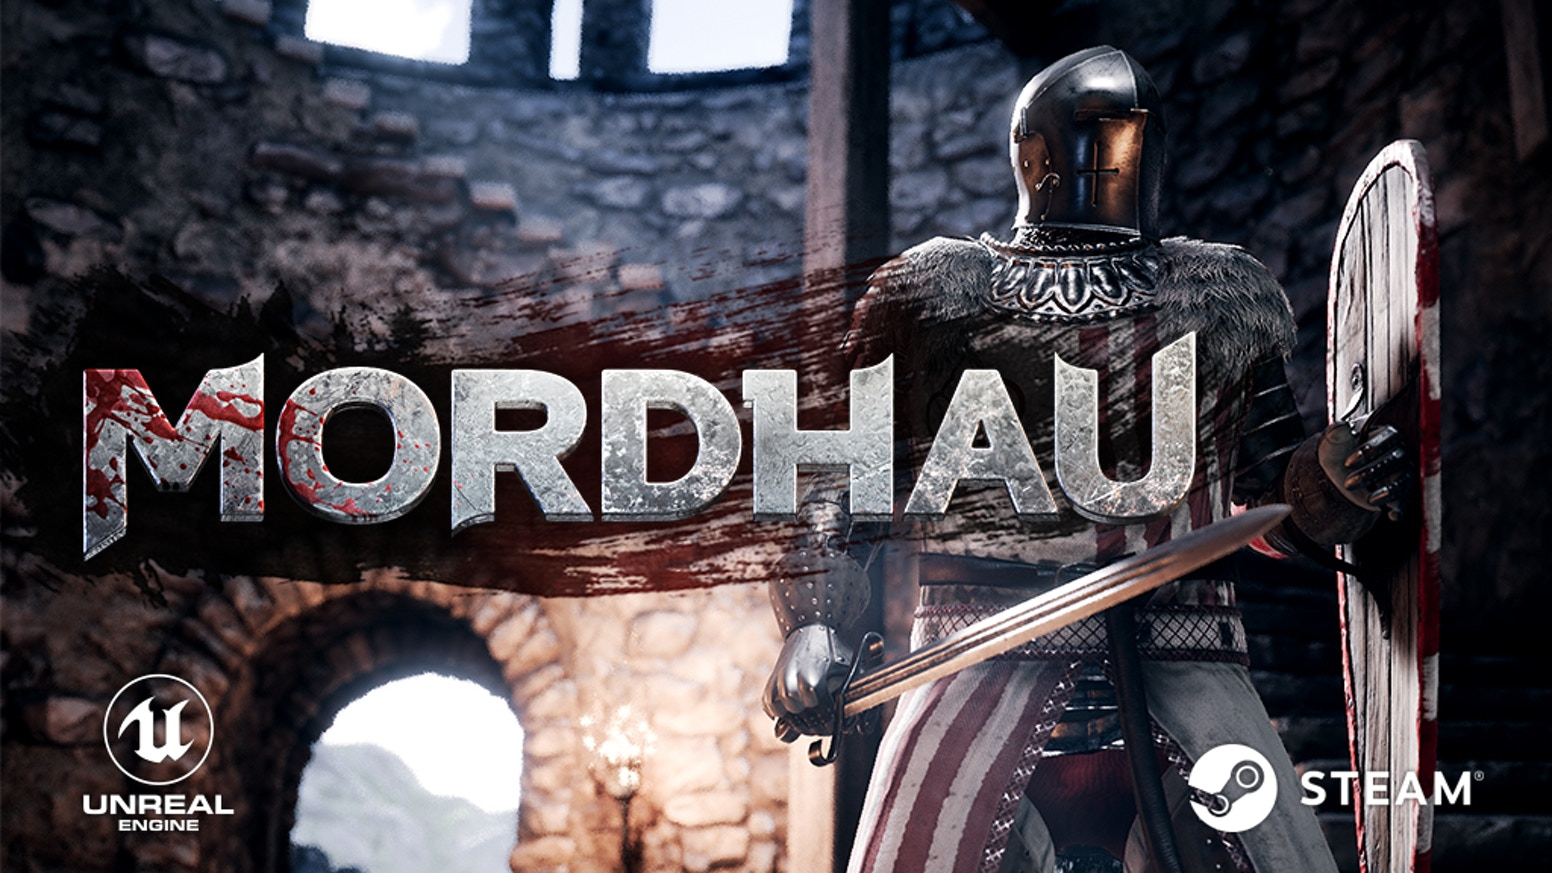 Mordhau is a multiplayer medieval melee game featuring large open battles, siege engines, and mounted combat.